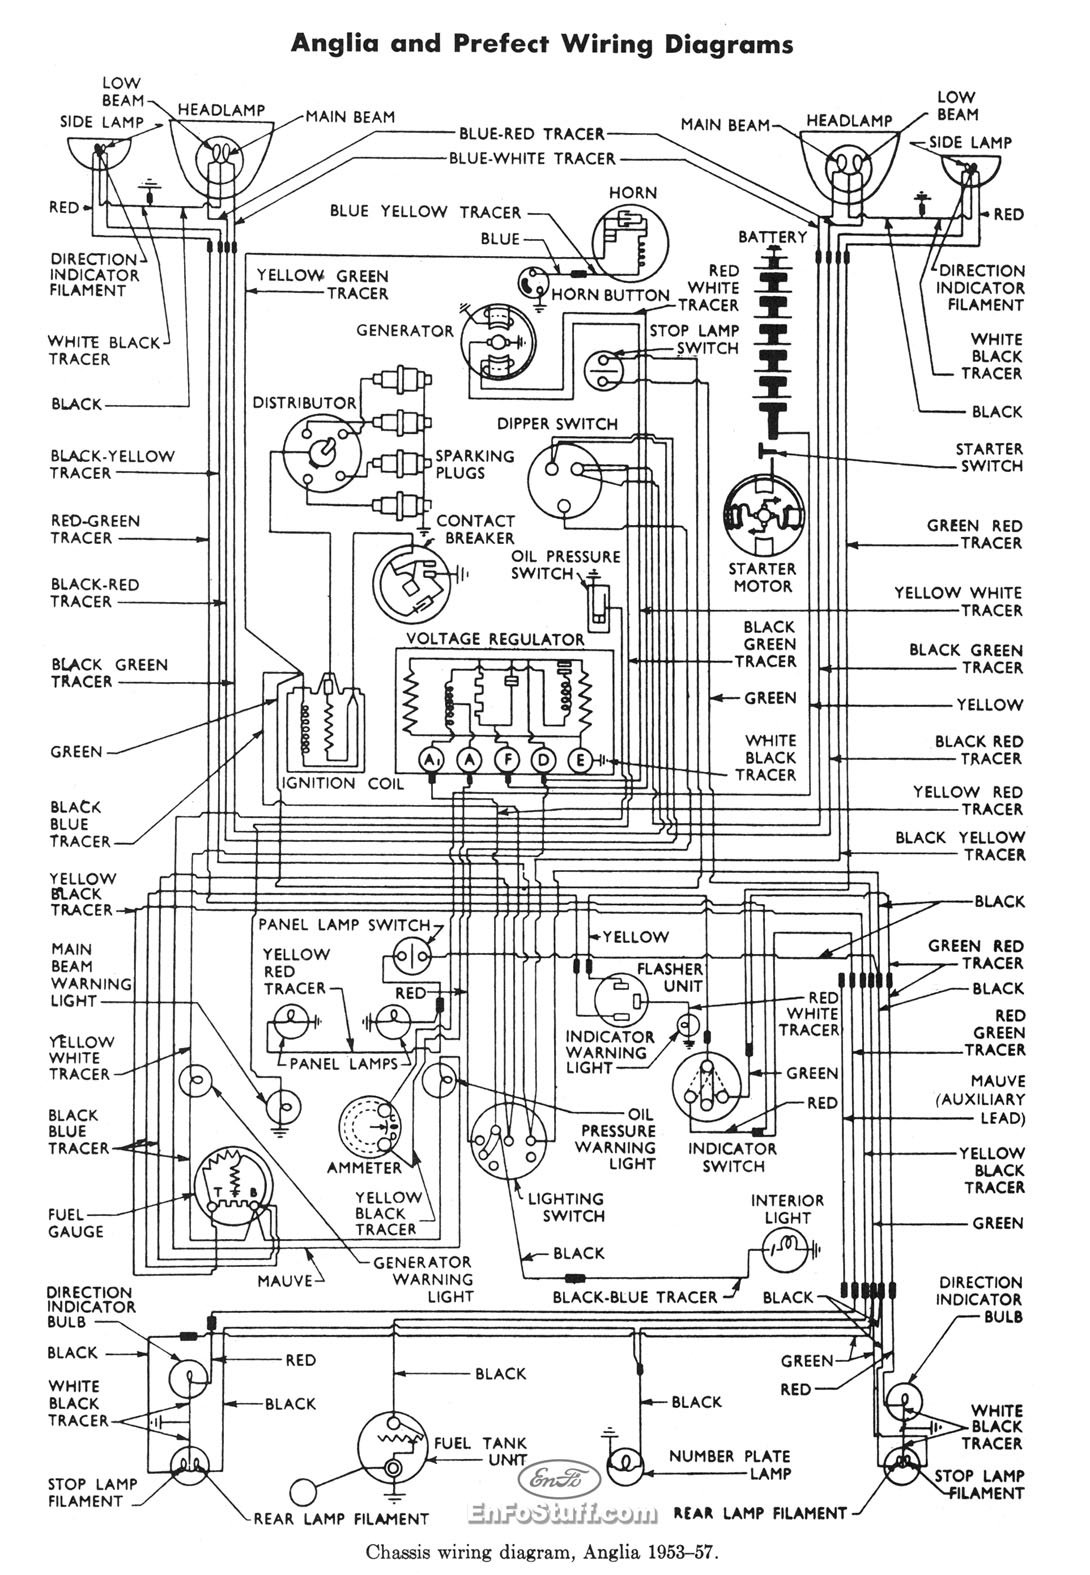 ford anglia 1953 57 wiring diagram wiring diagram for ford anglia 1953 57 ford 3000 electrical wiring diagram at mifinder.co